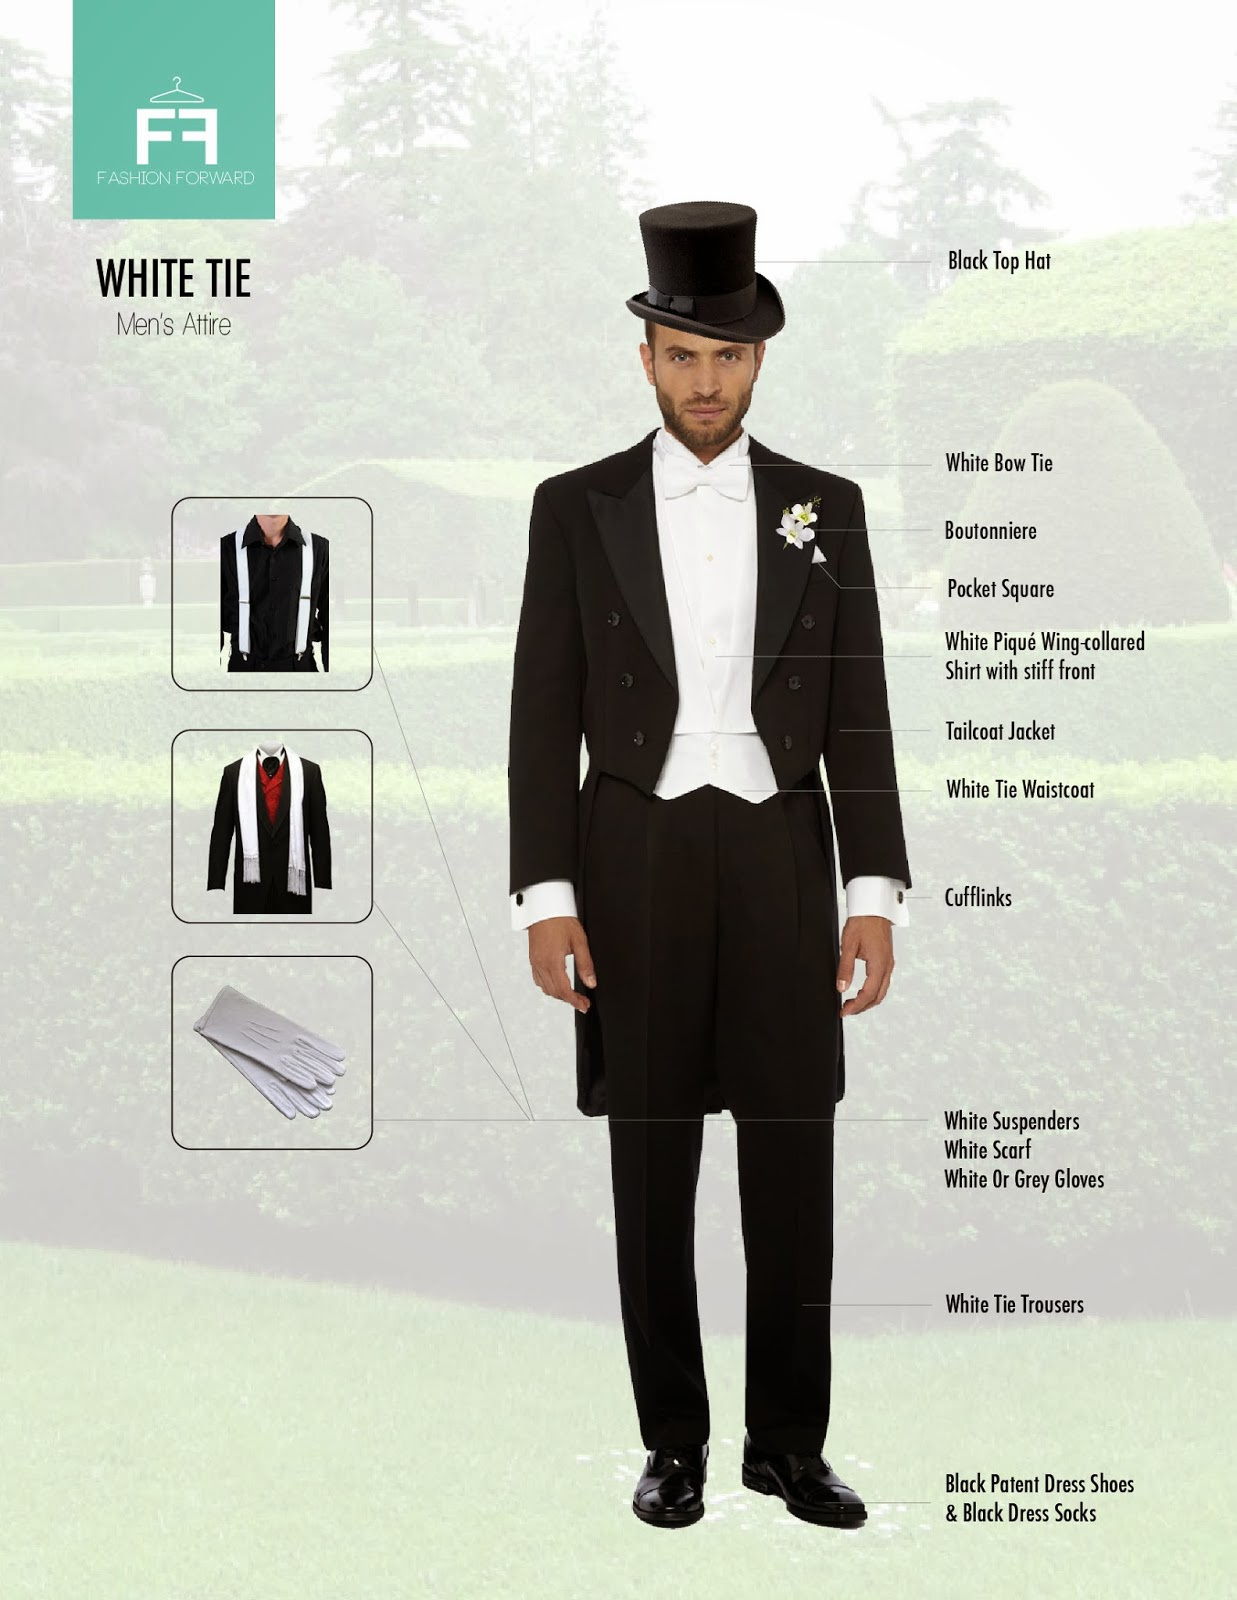 1000+ images about White tie on Pinterest